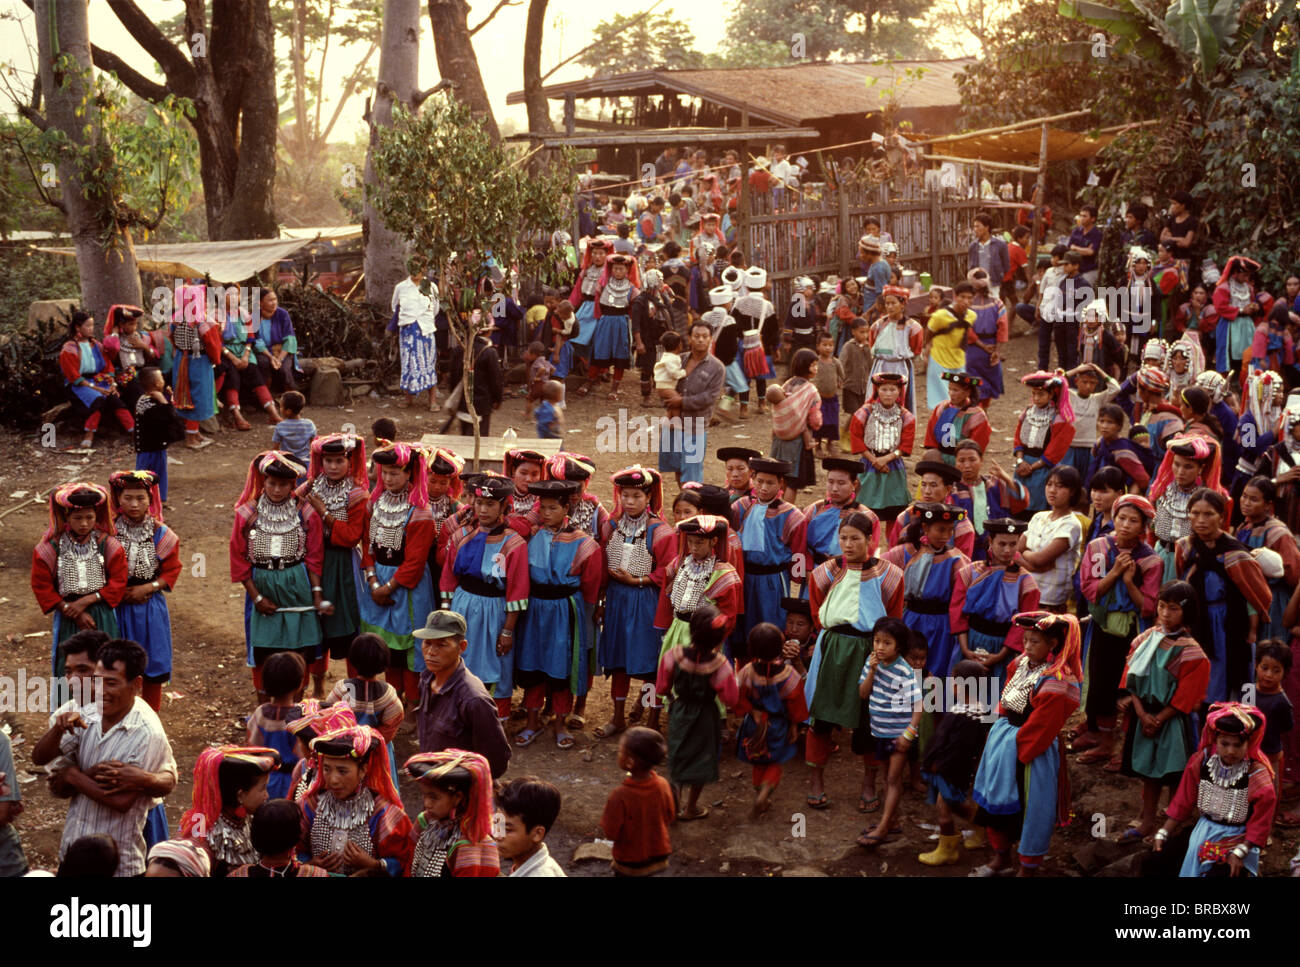 Gathering of Lisu tribes people, Northern Thailand - Stock Image